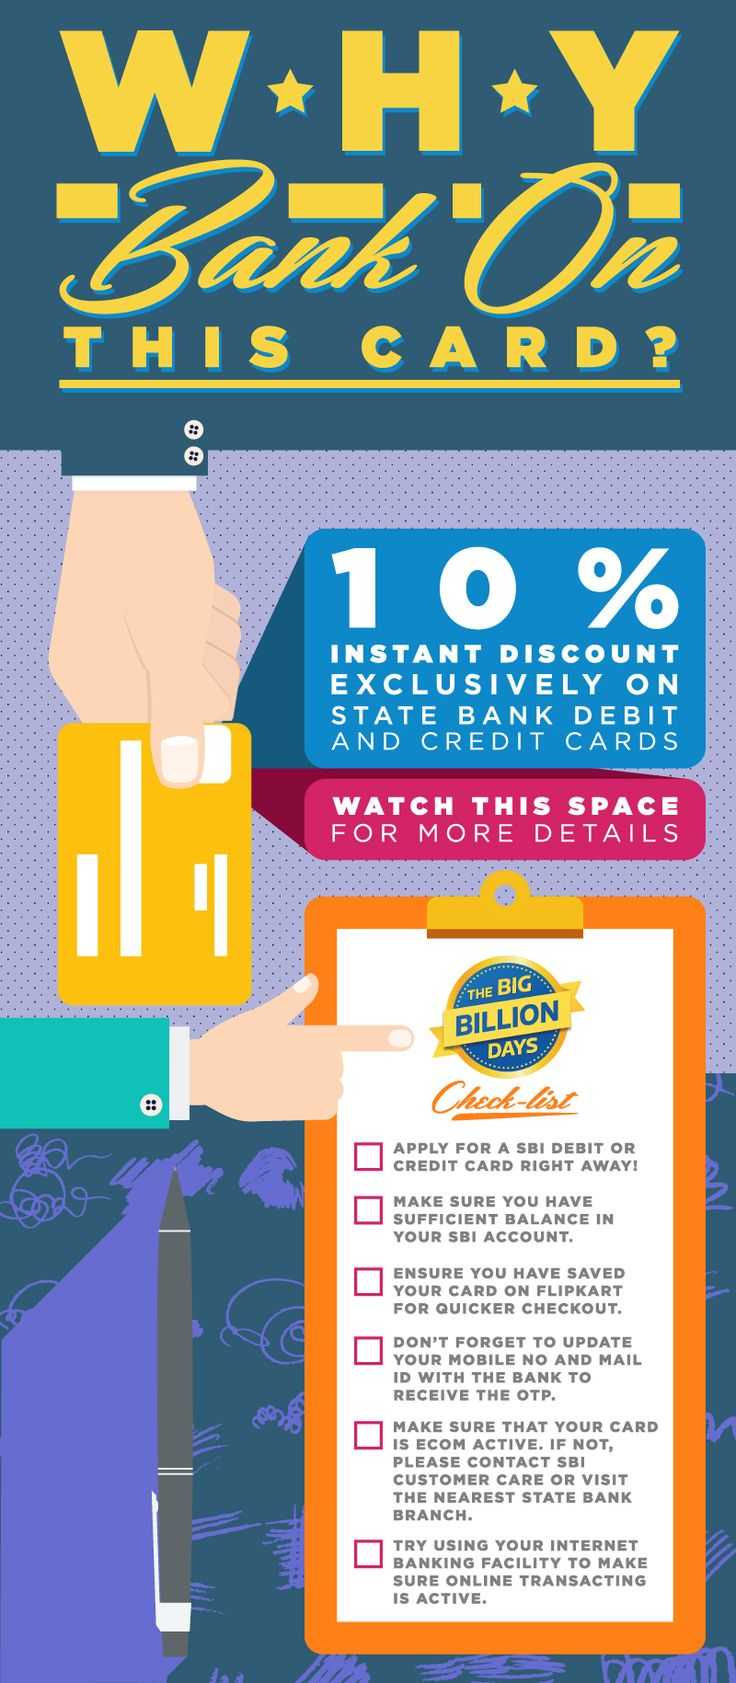 SBI debit and credit card offers for Big Billion Days 2016